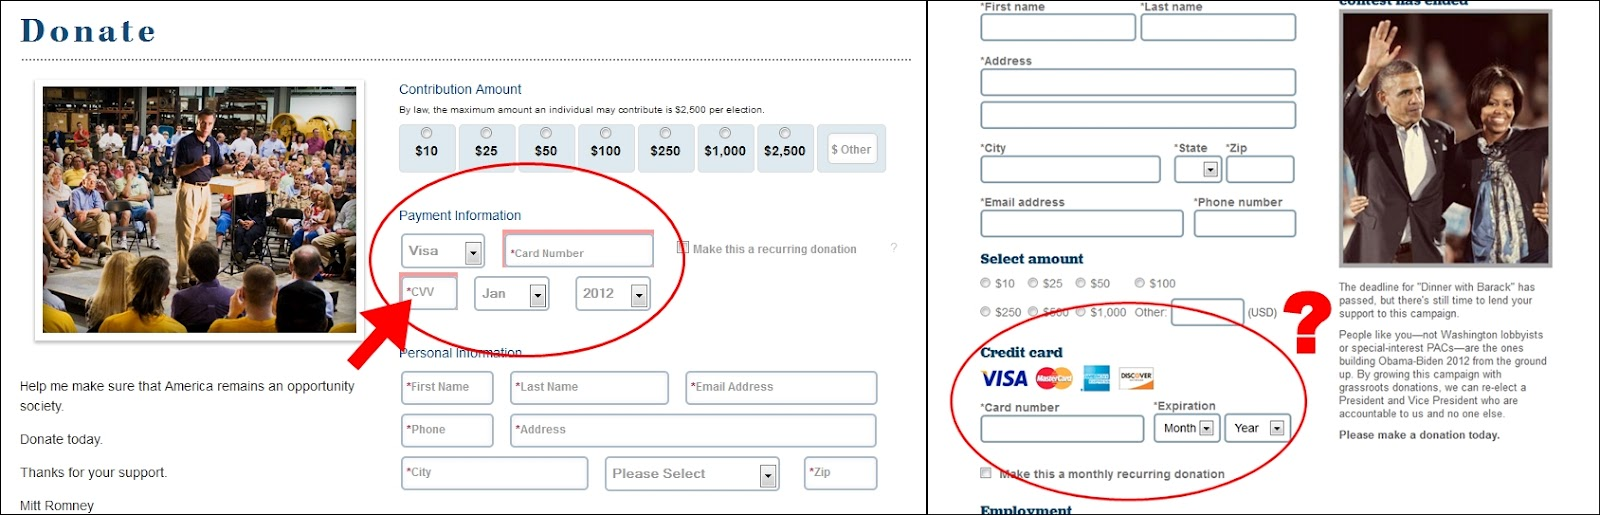 how to disable need to put verification code sims 3